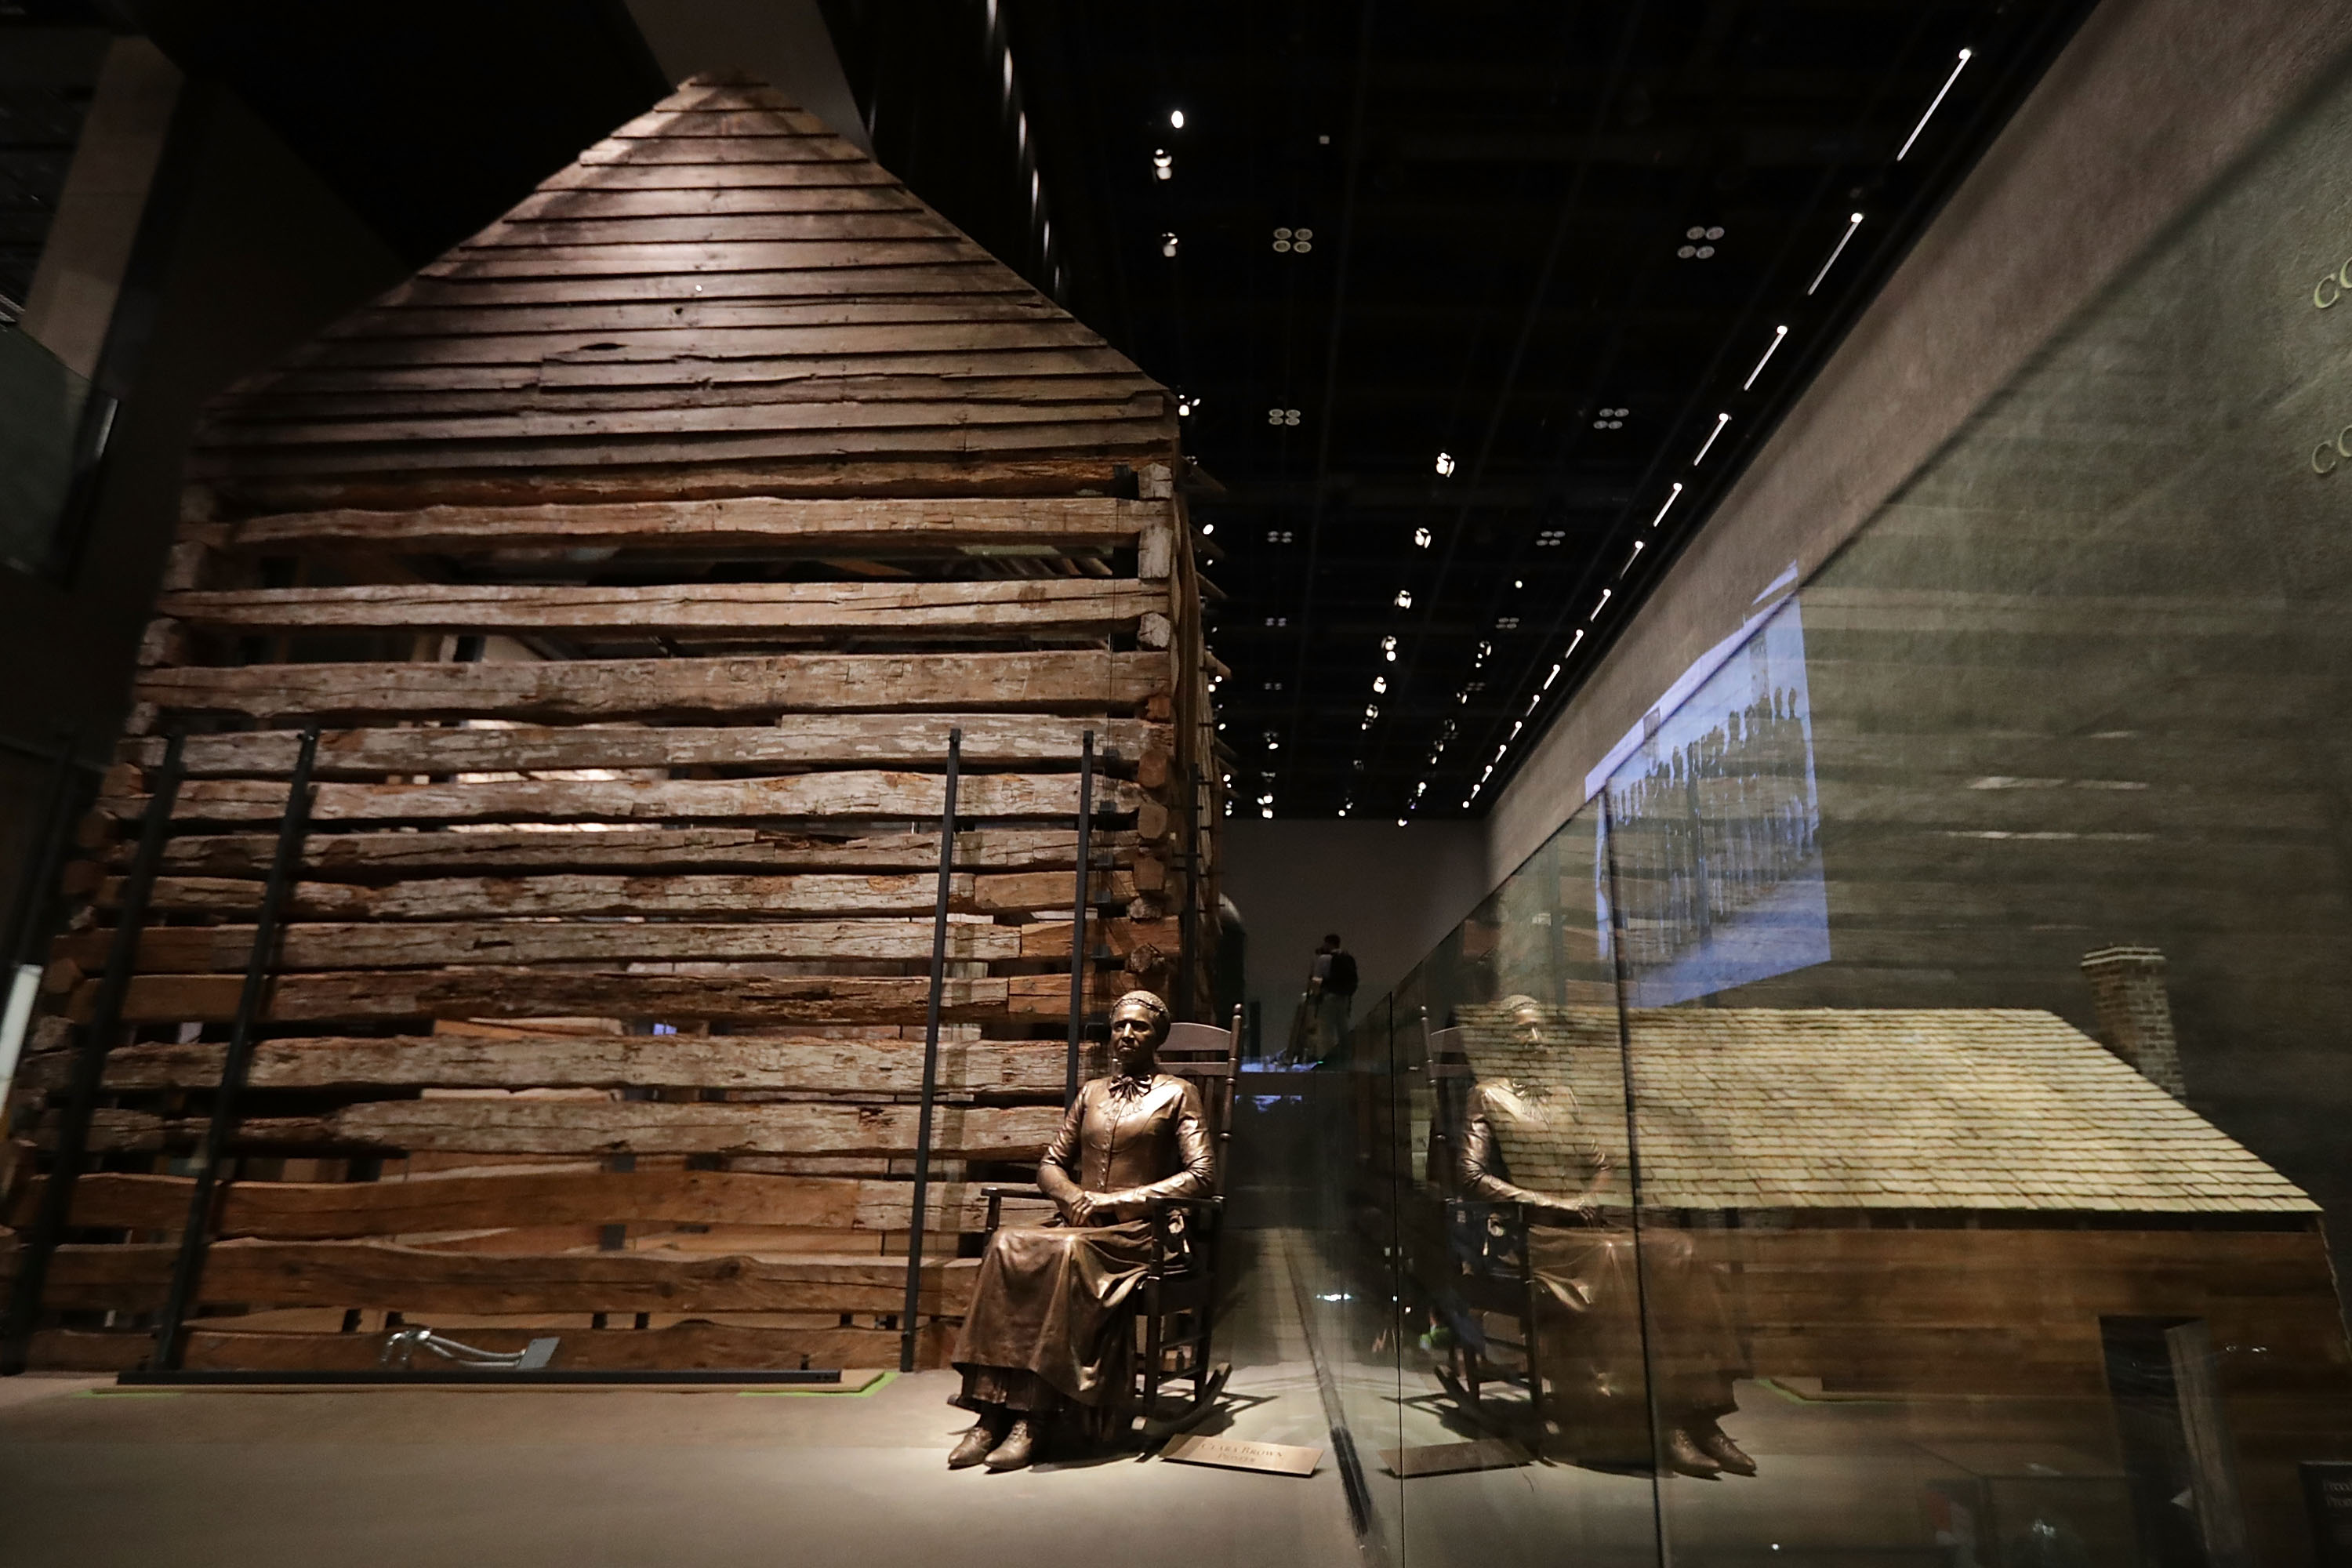 Confronting slavery head-on, new museums shift how U.S. history is told